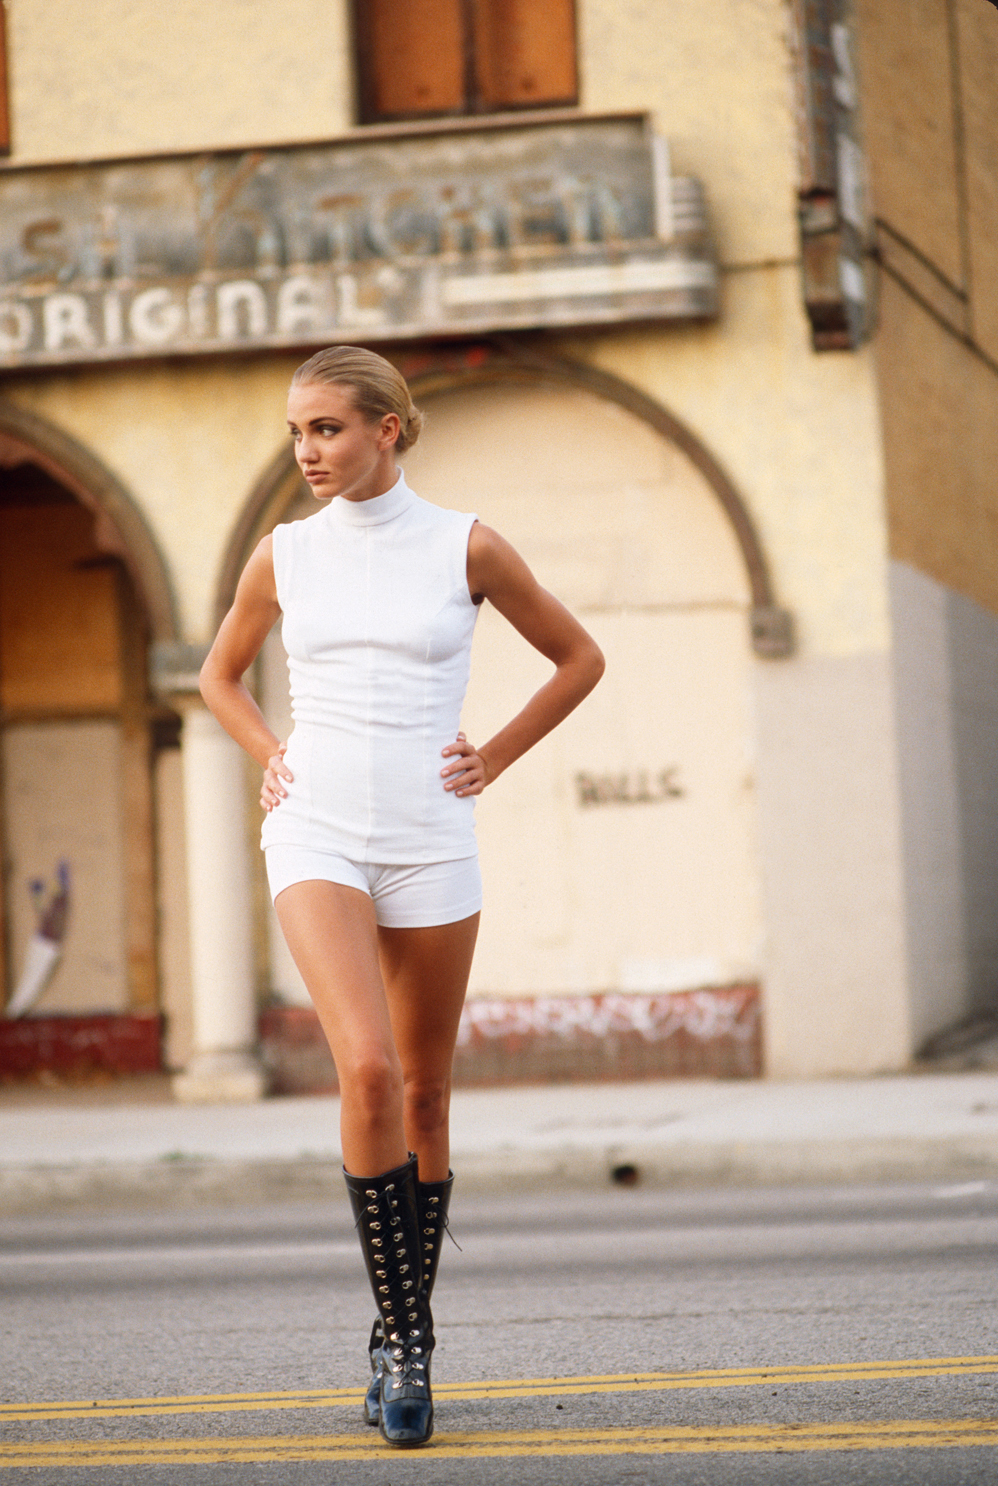 Cameron Diaz photographed in Los Angeles